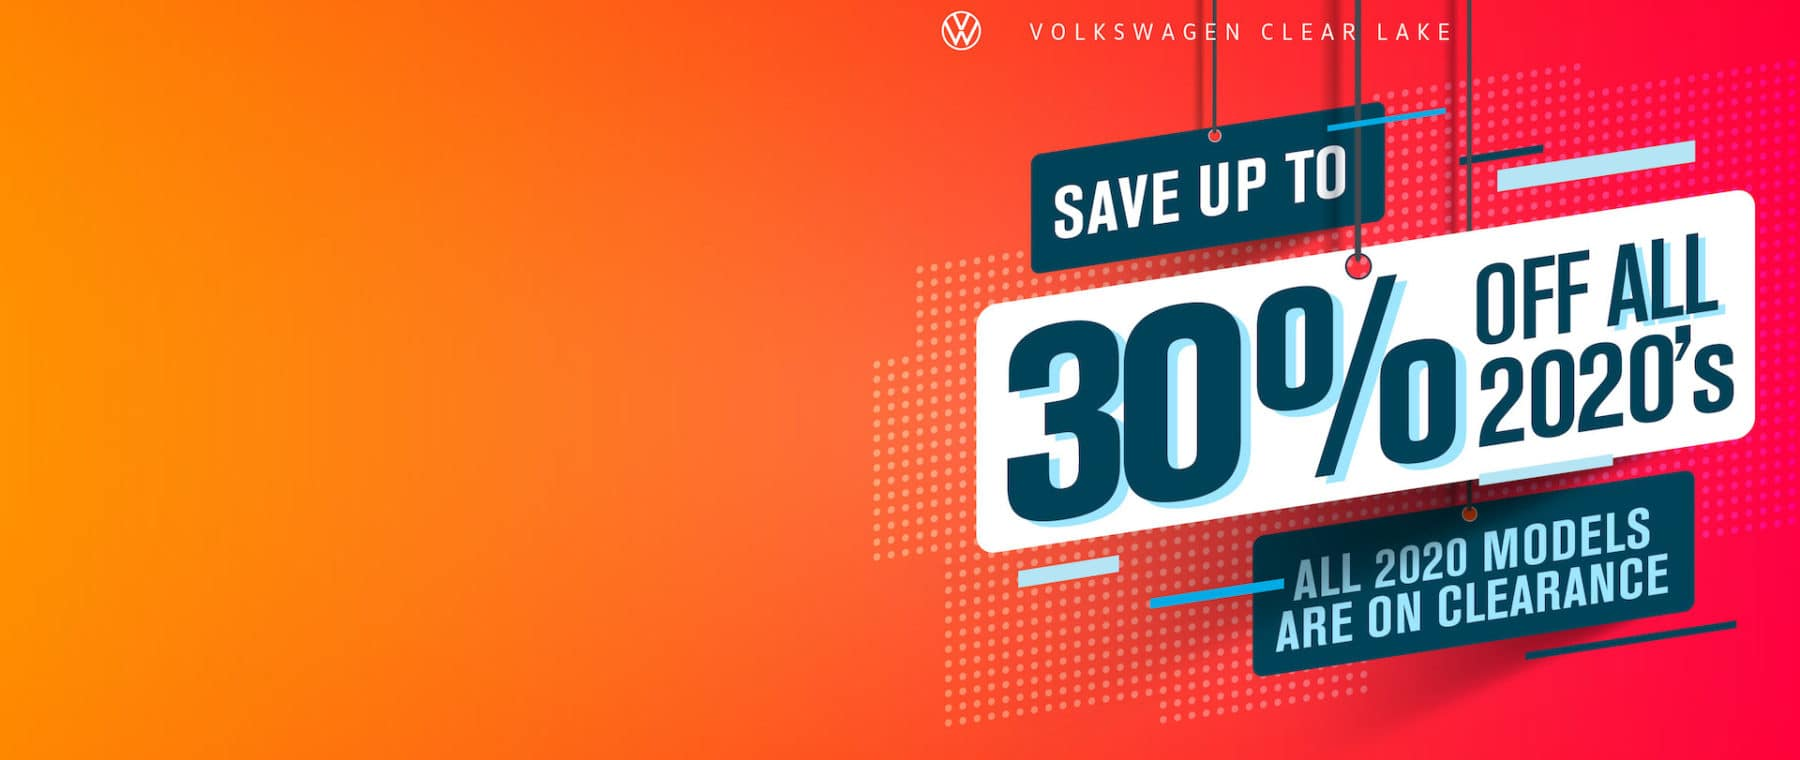 Save up to 30% off remaining 2020's at VW Clear Lake!